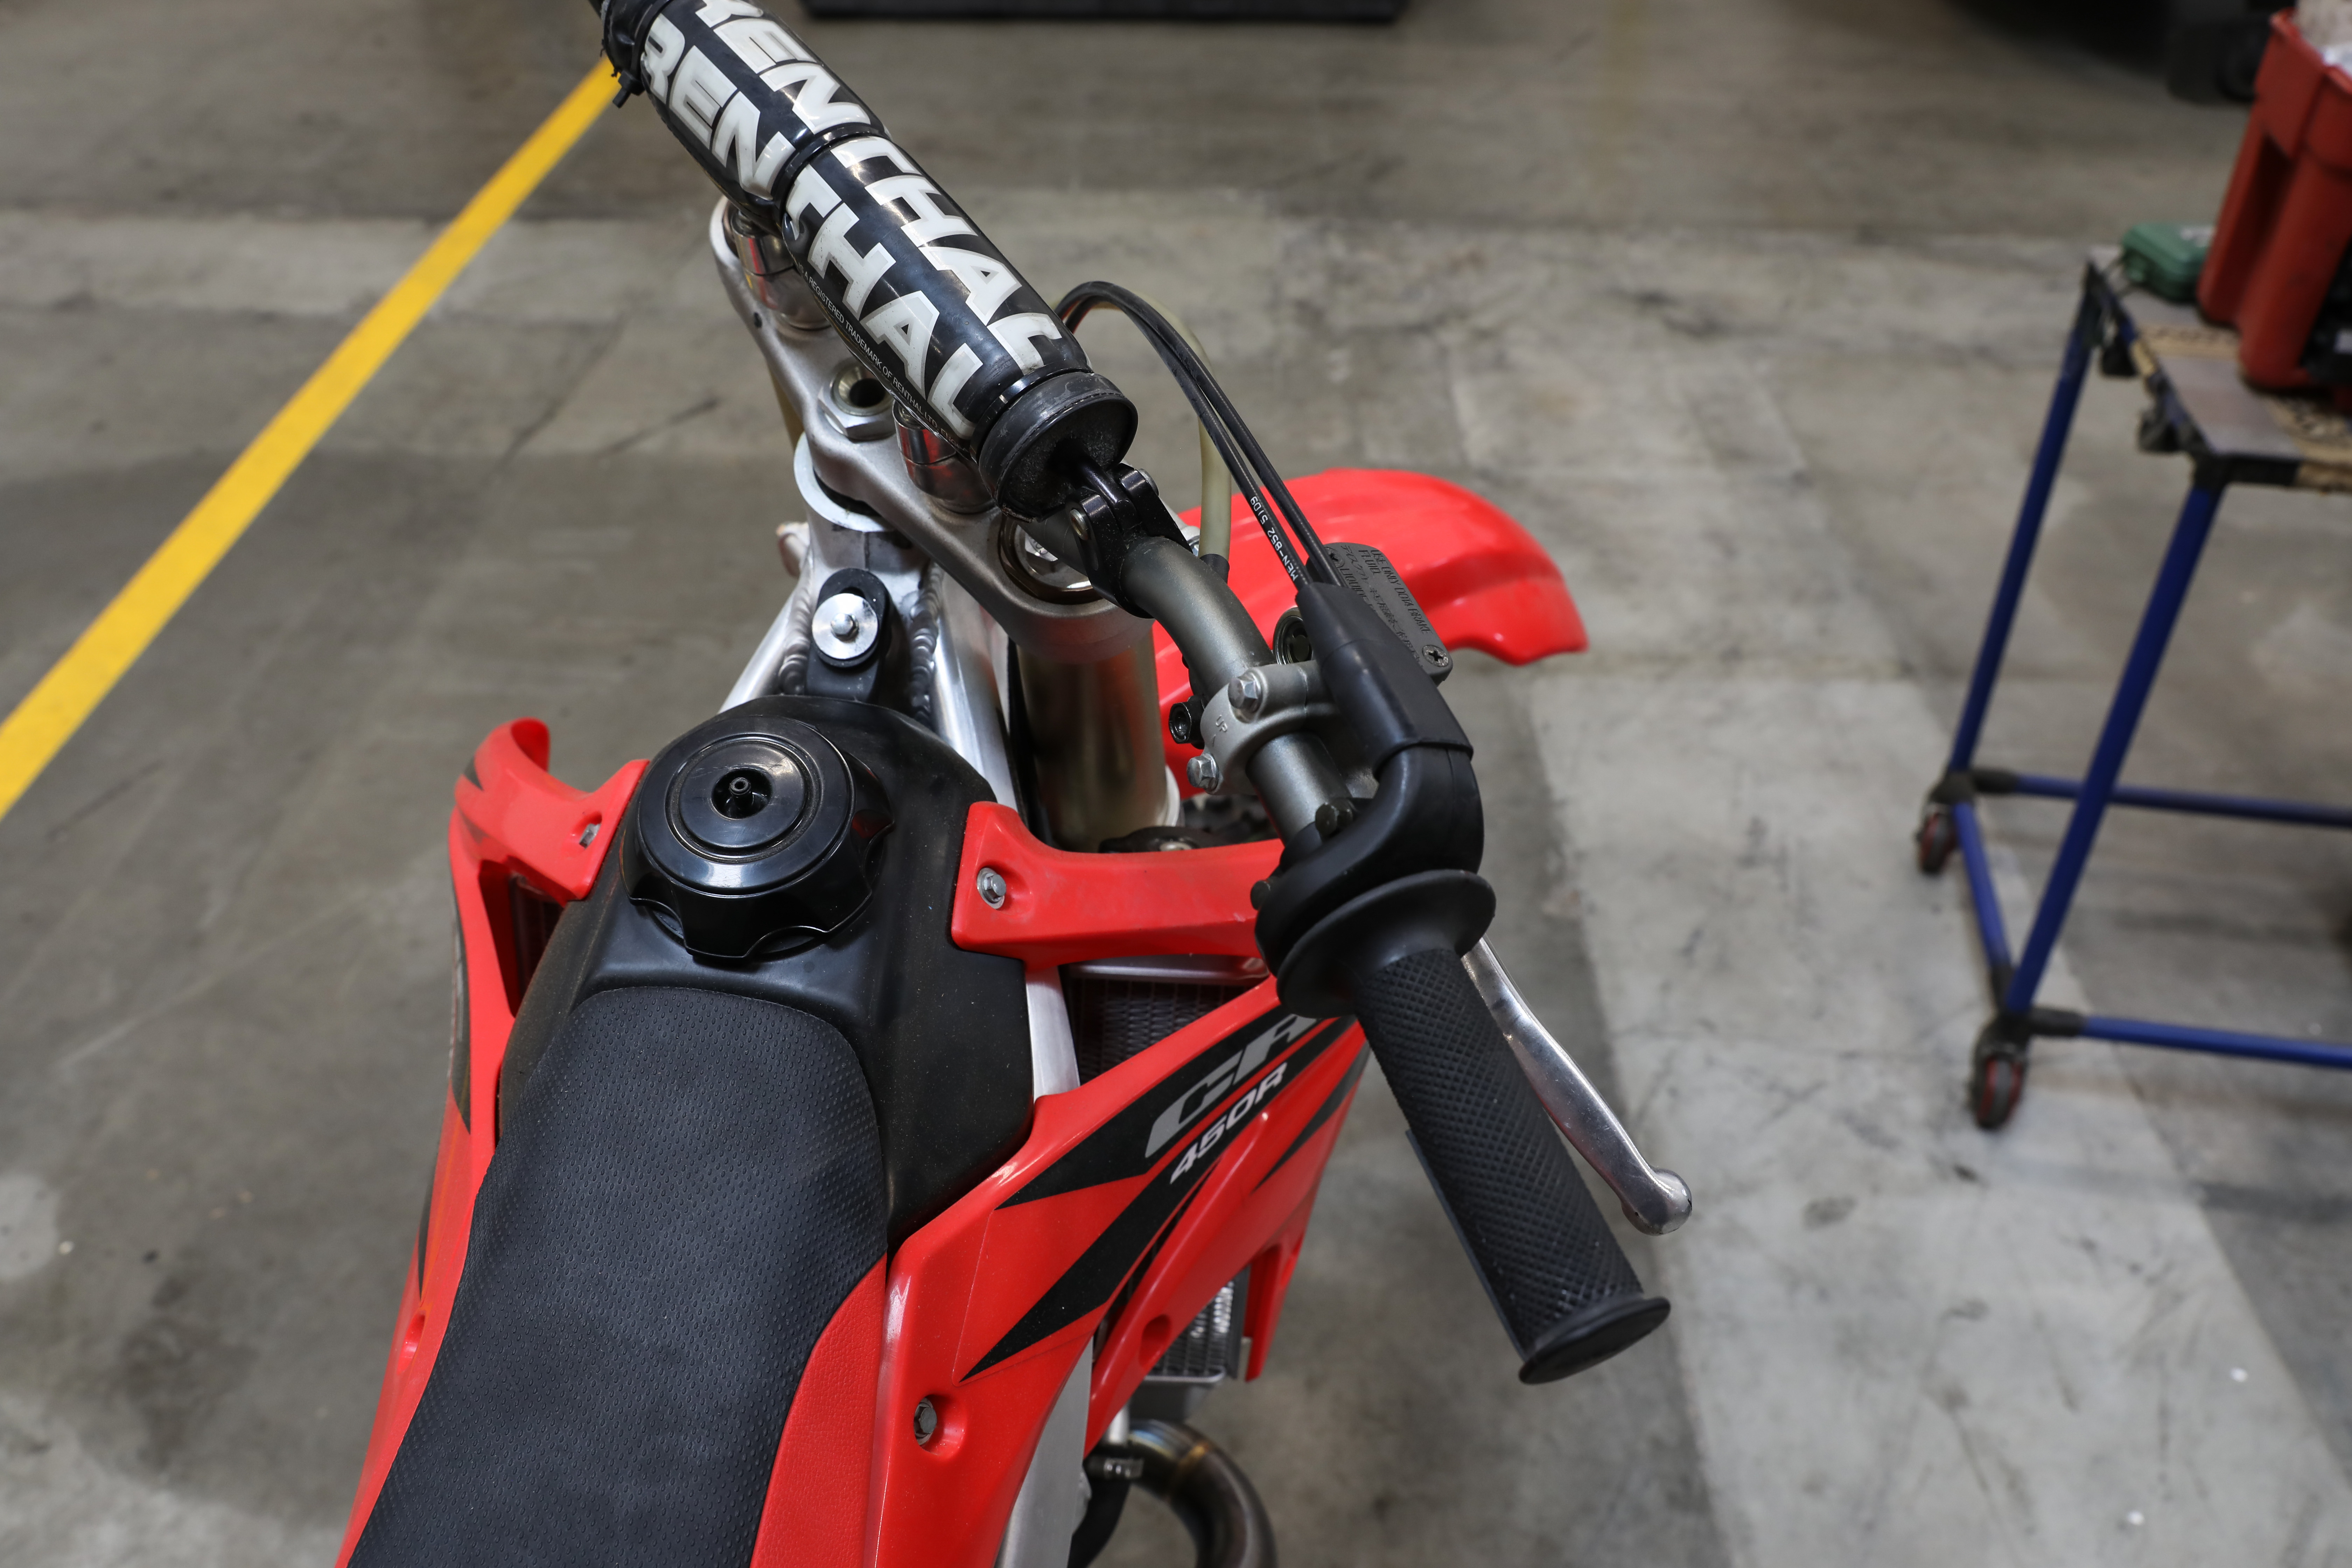 8c1b3acd3a3 With the bike OFF, twist the trottle open to the stop and let go. Make sure  the throttle returns to the closed position quickly and easily.